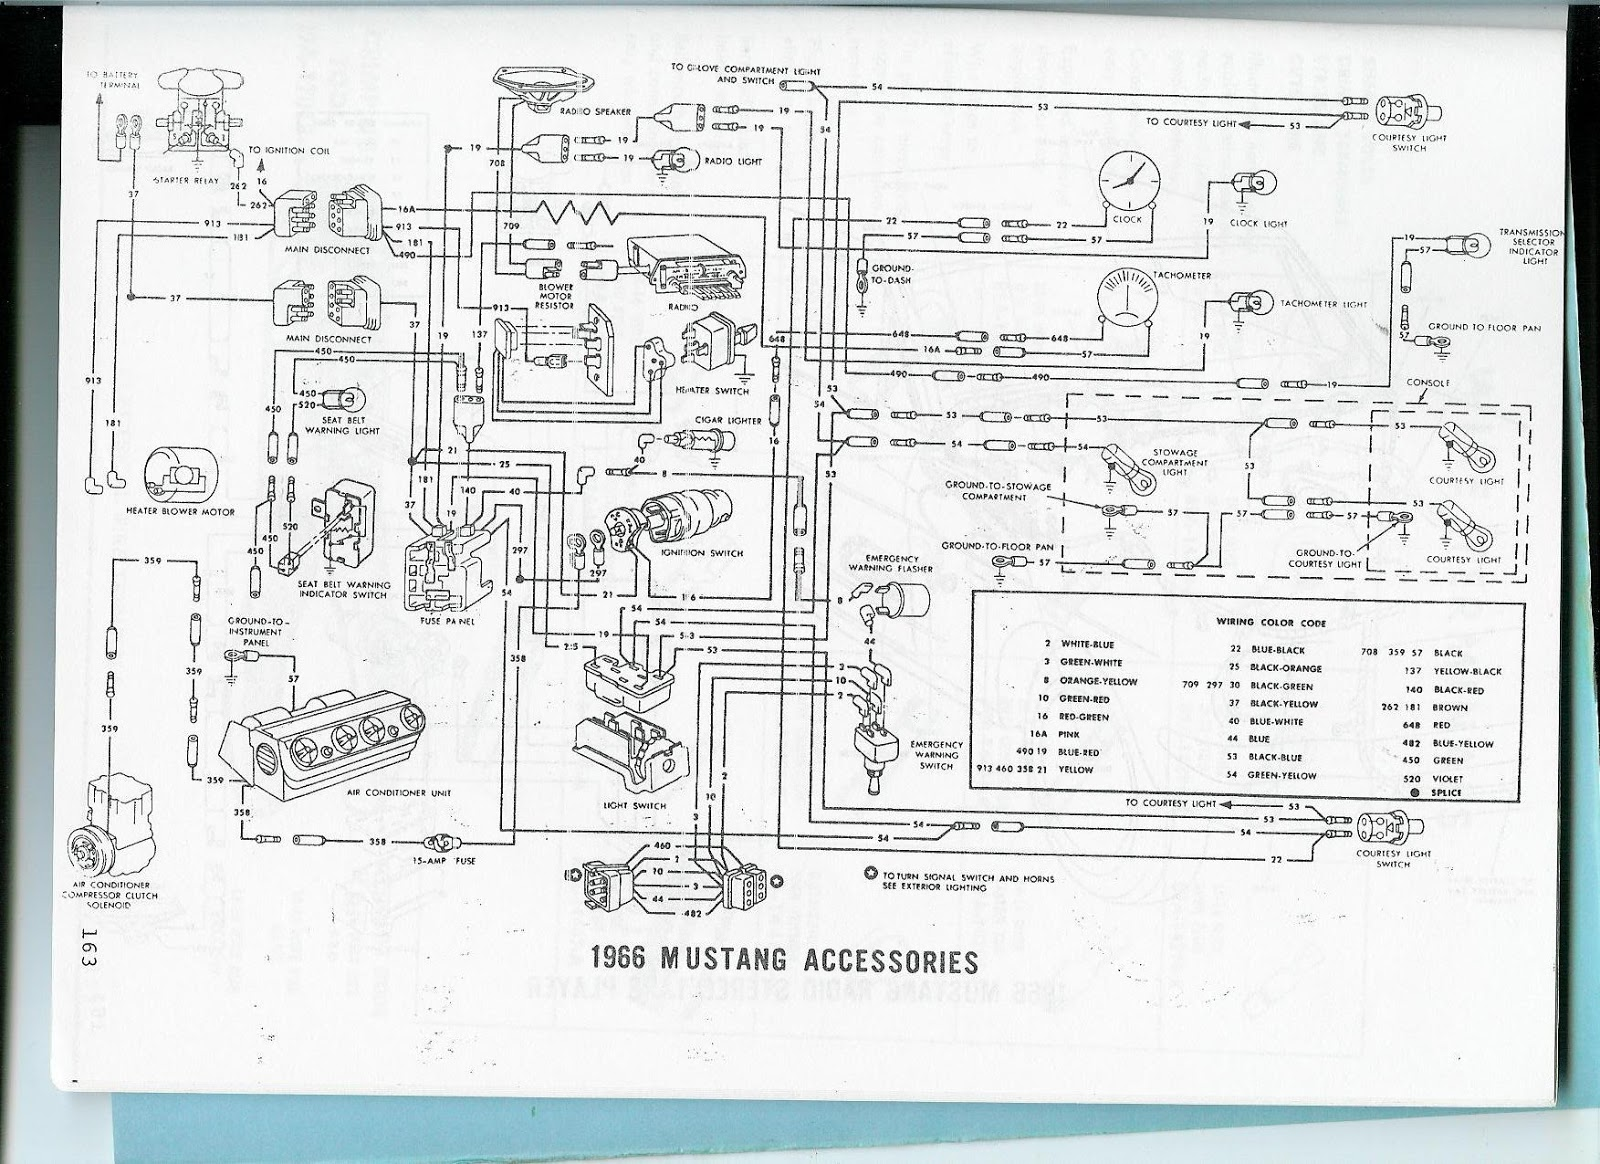 similiar 1966 mustang wiring colors keywords the care and feeding of ponies 1966 mustang wiring diagrams